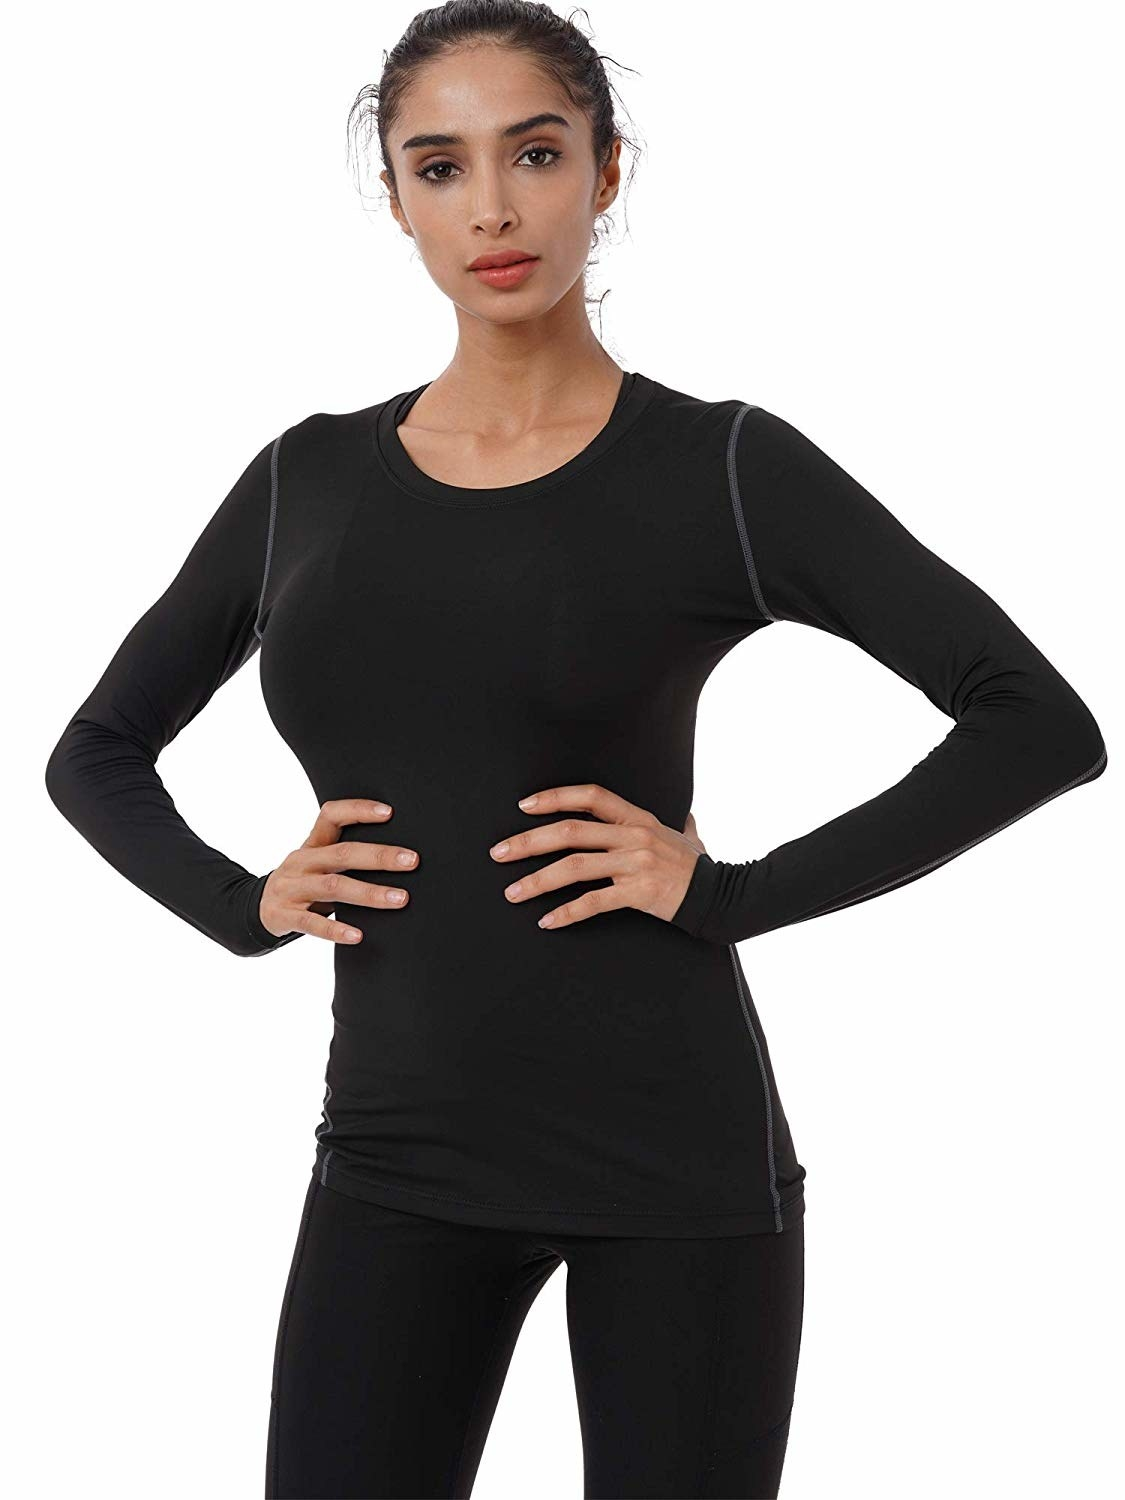 a model wearing the compression shirt in black